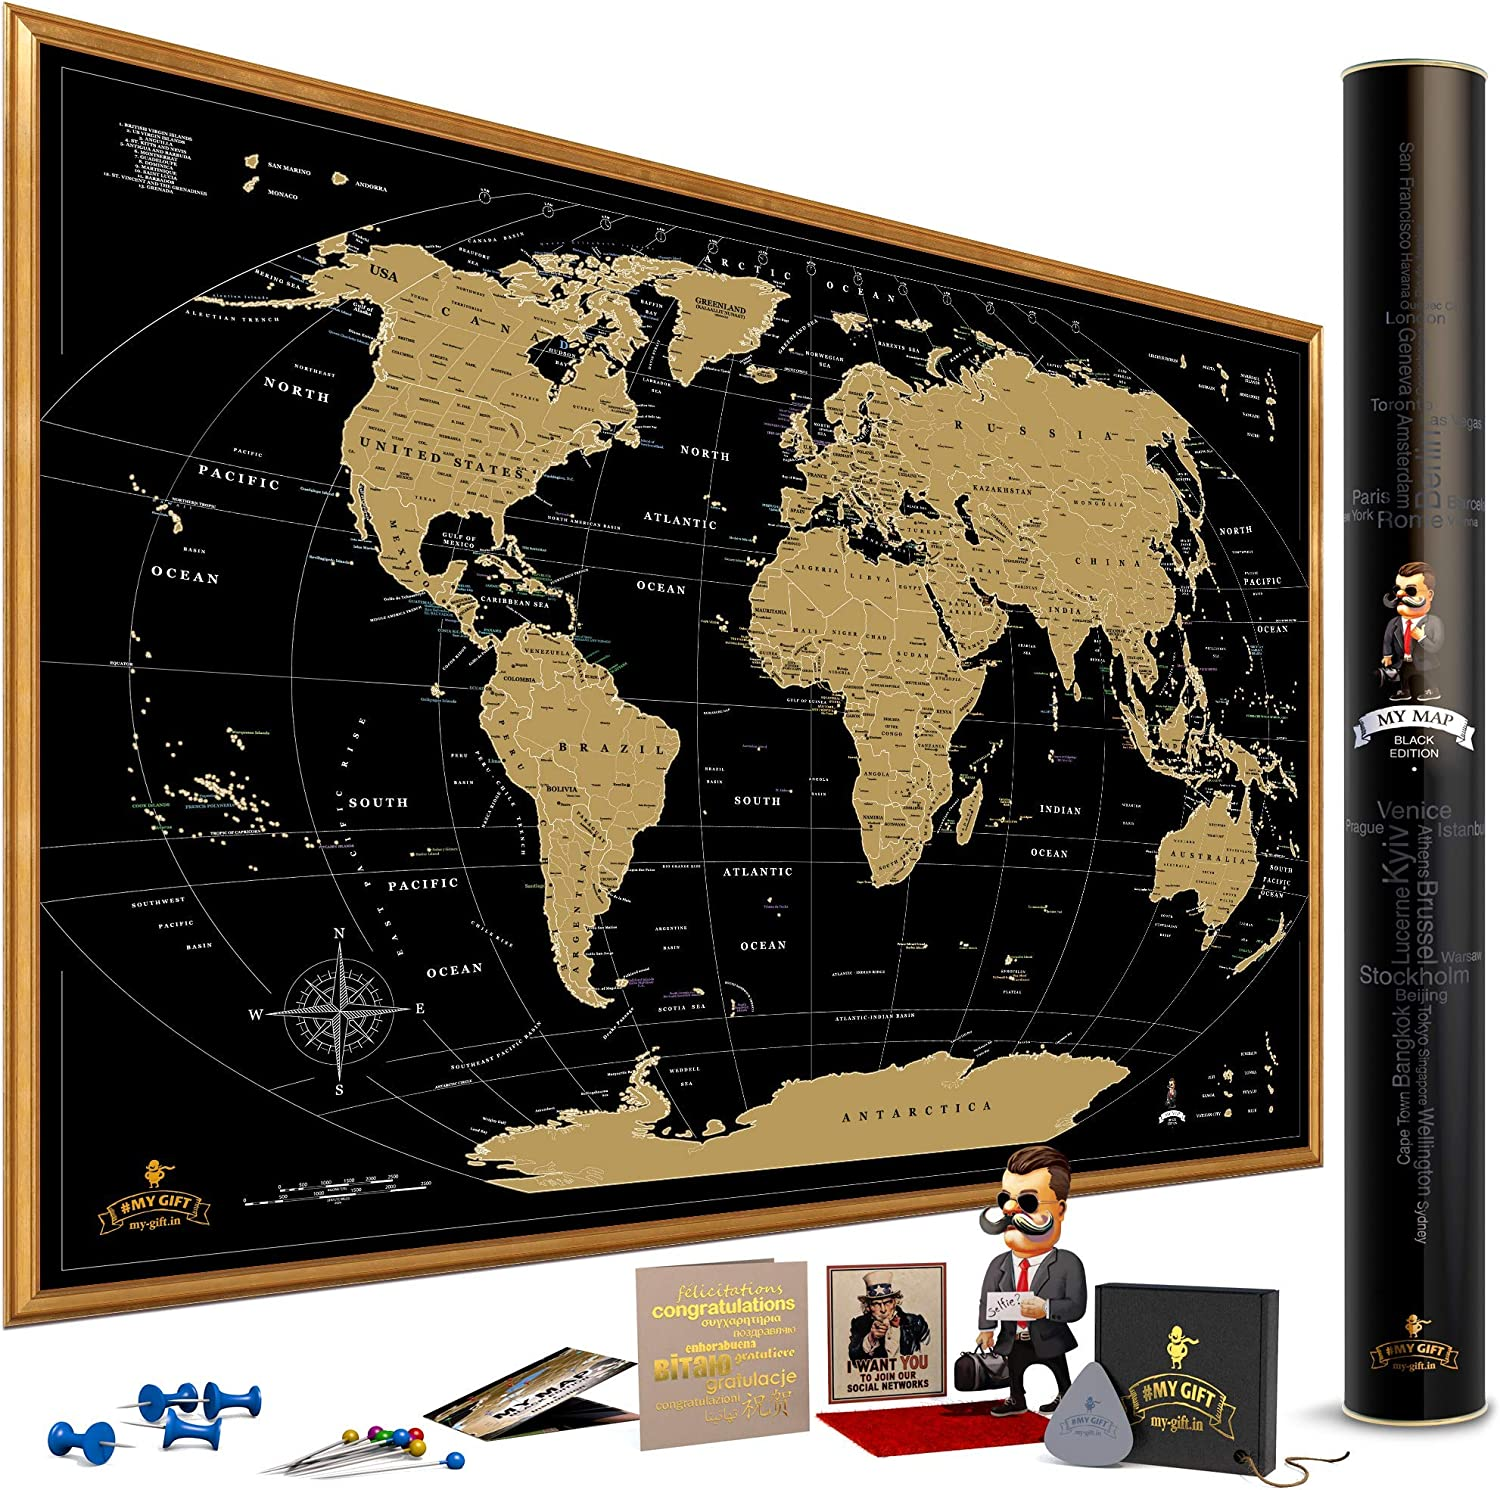 Scratch Off World Map Amazon.: MyMap Gold Scratch Off World Map Wall Poster with US